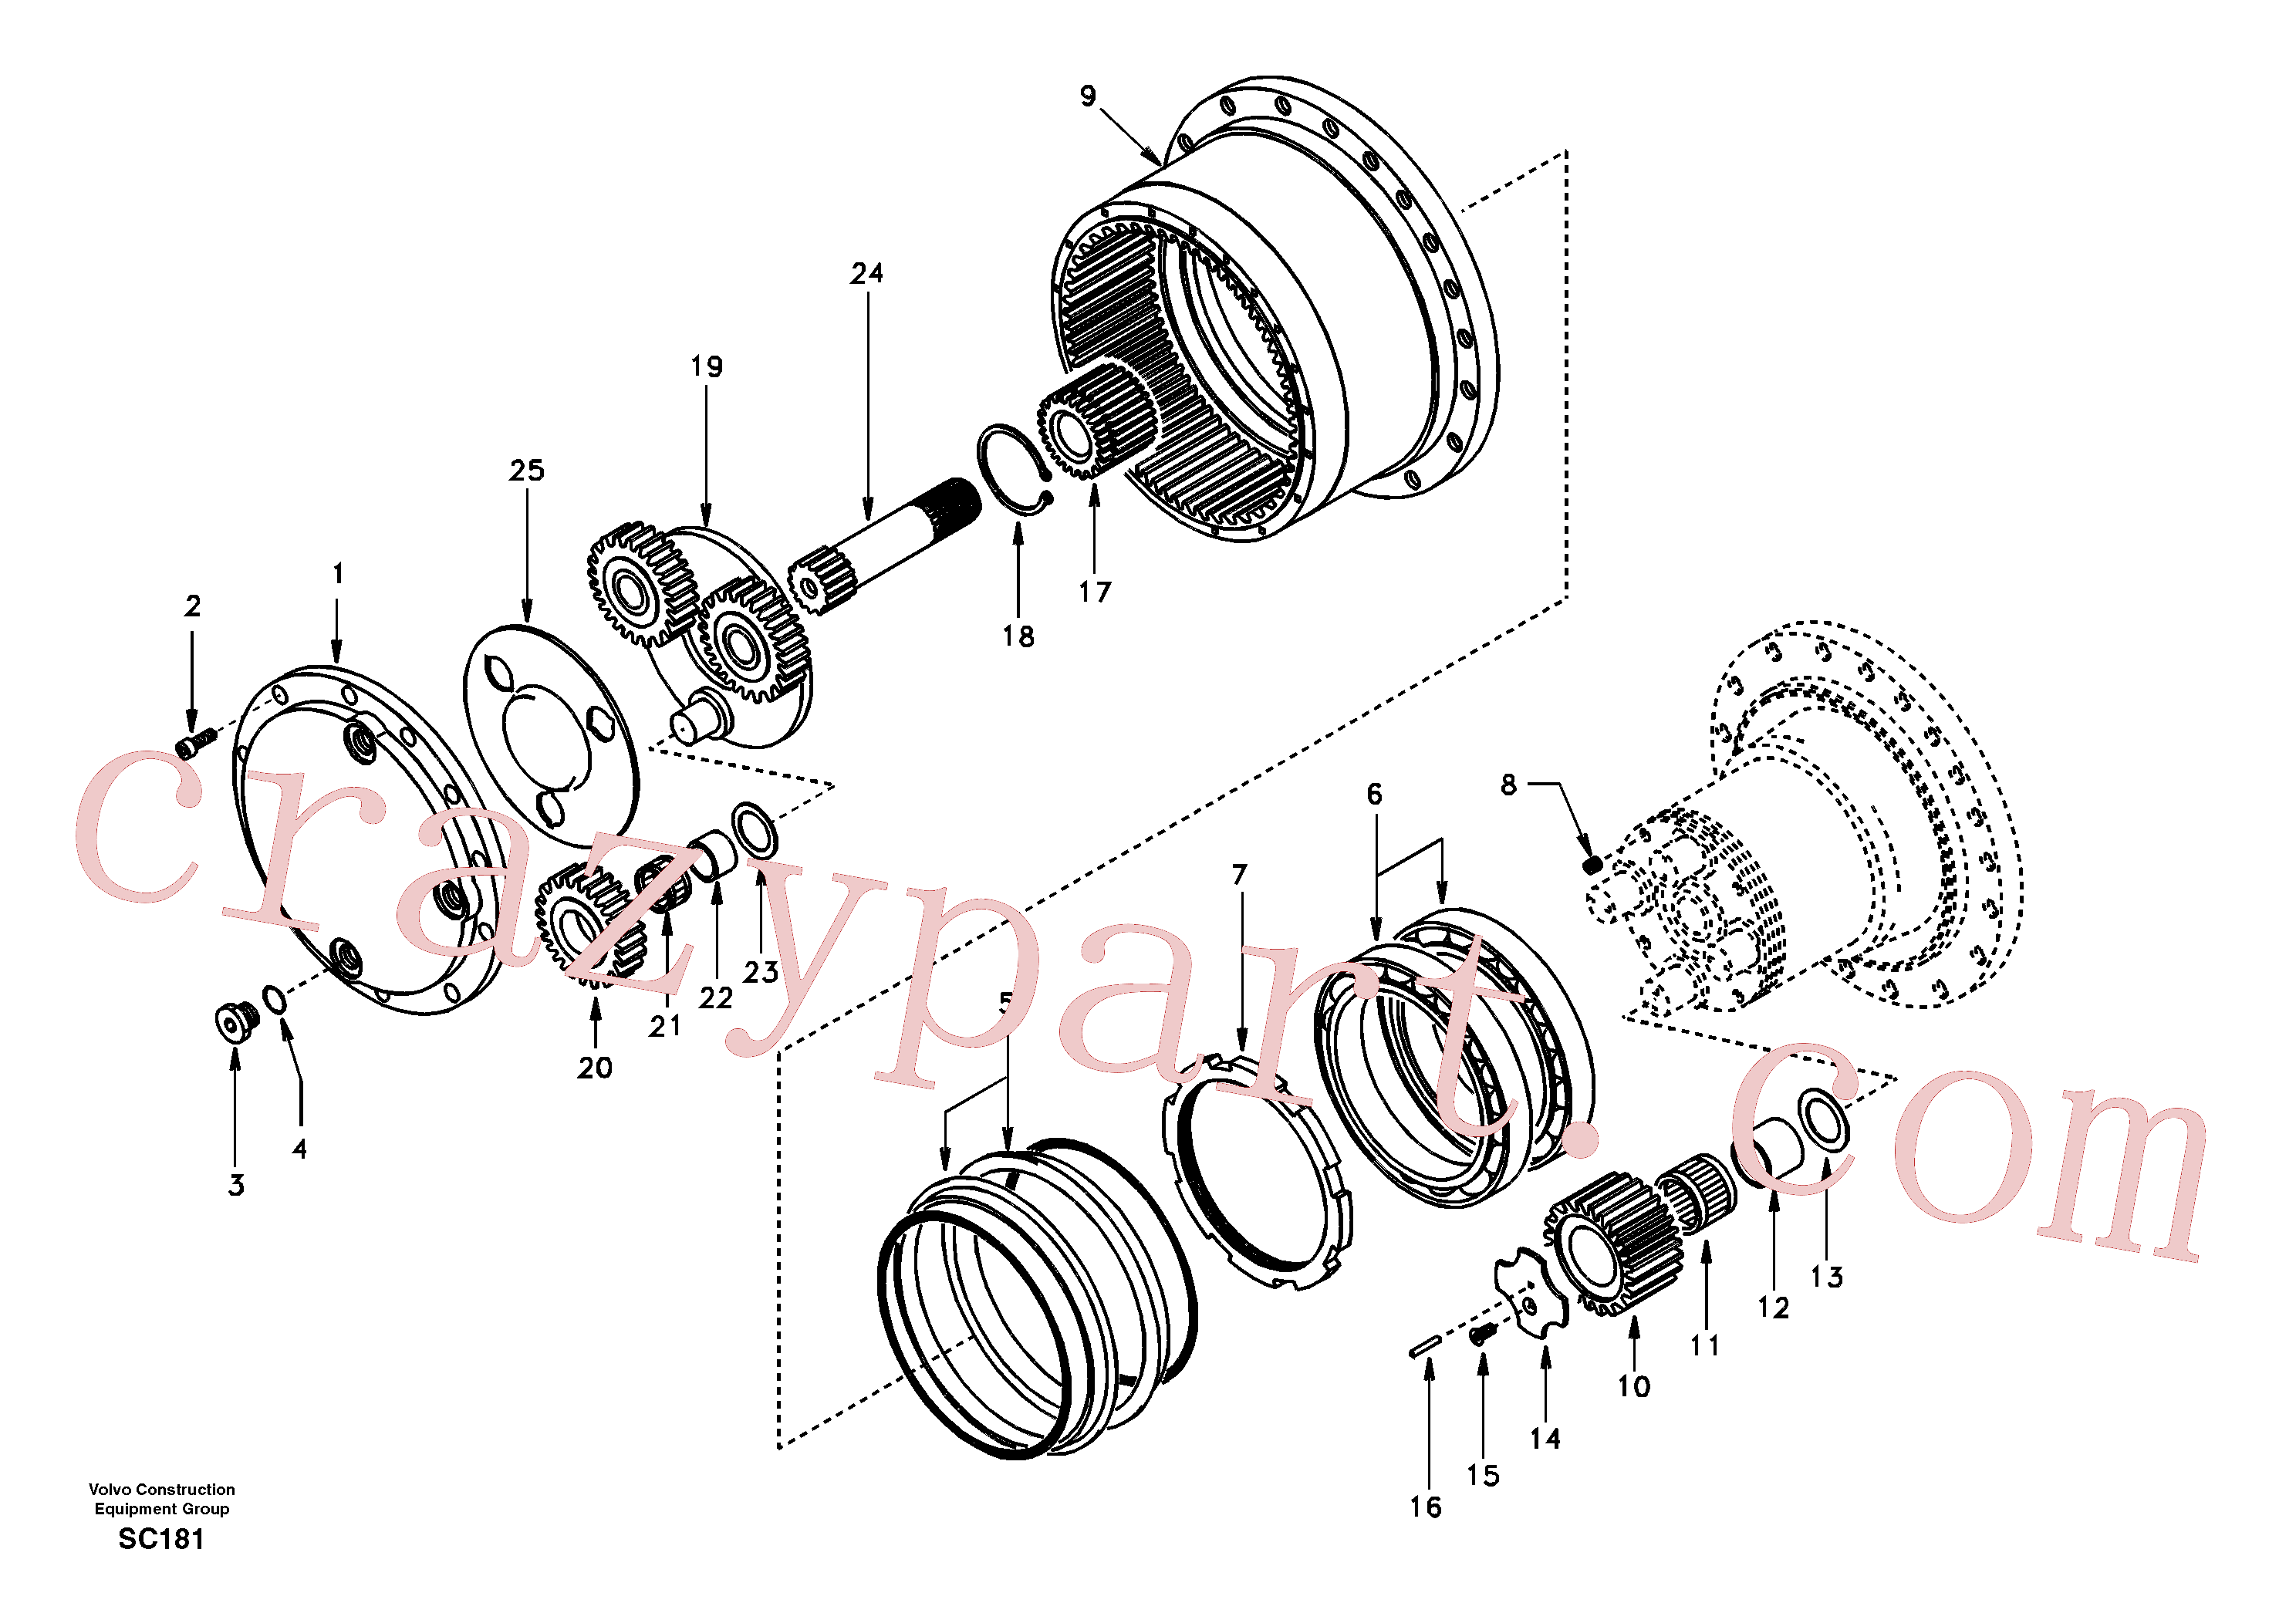 SA8230-33470 for Volvo Travel gearbox(SC181 assembly)